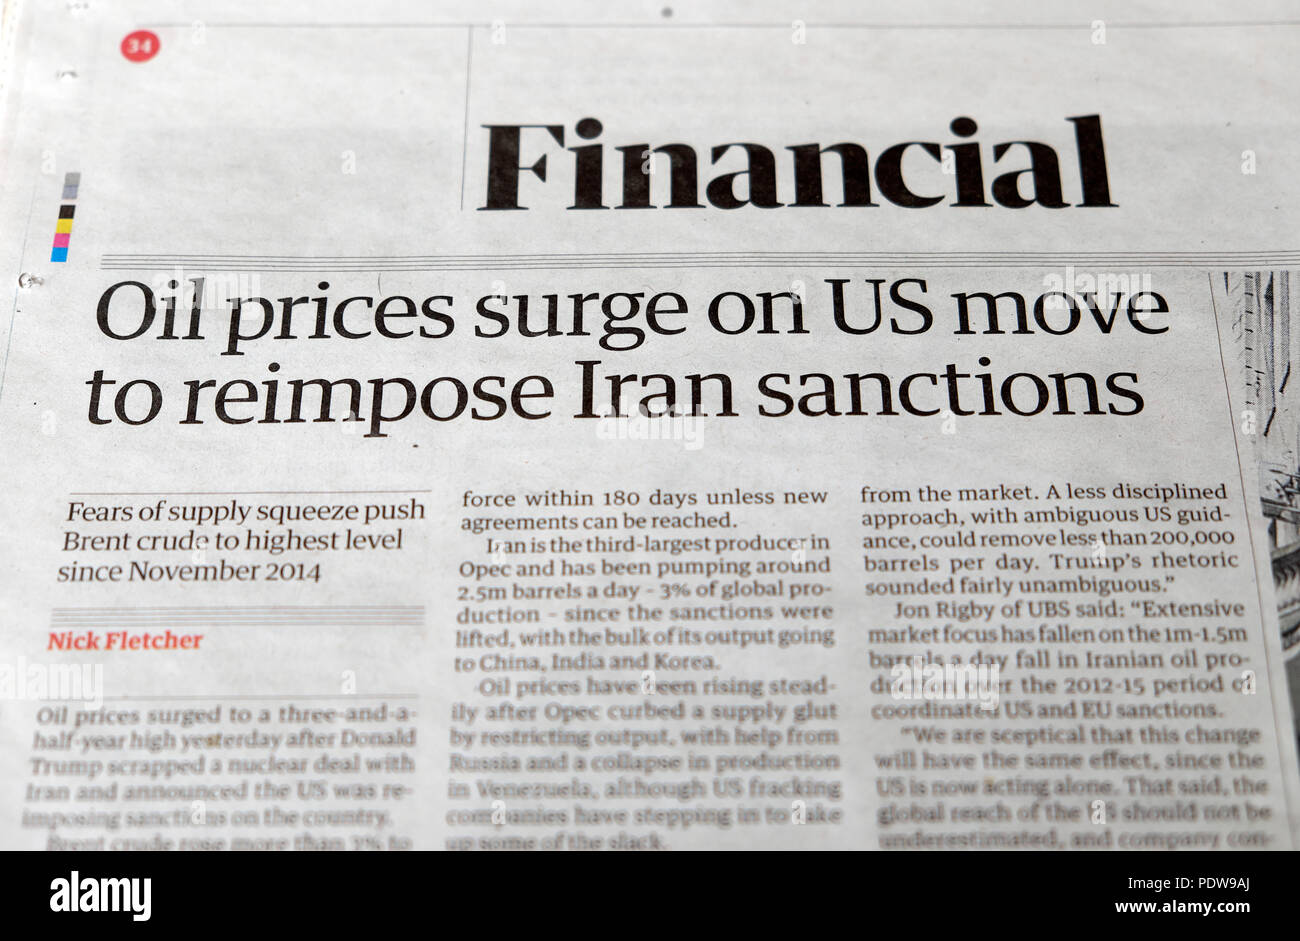 Obama Statement On Iran Election >> Guardian Newspaper Headline Us Britain Stock Photos & Guardian Newspaper Headline Us Britain ...